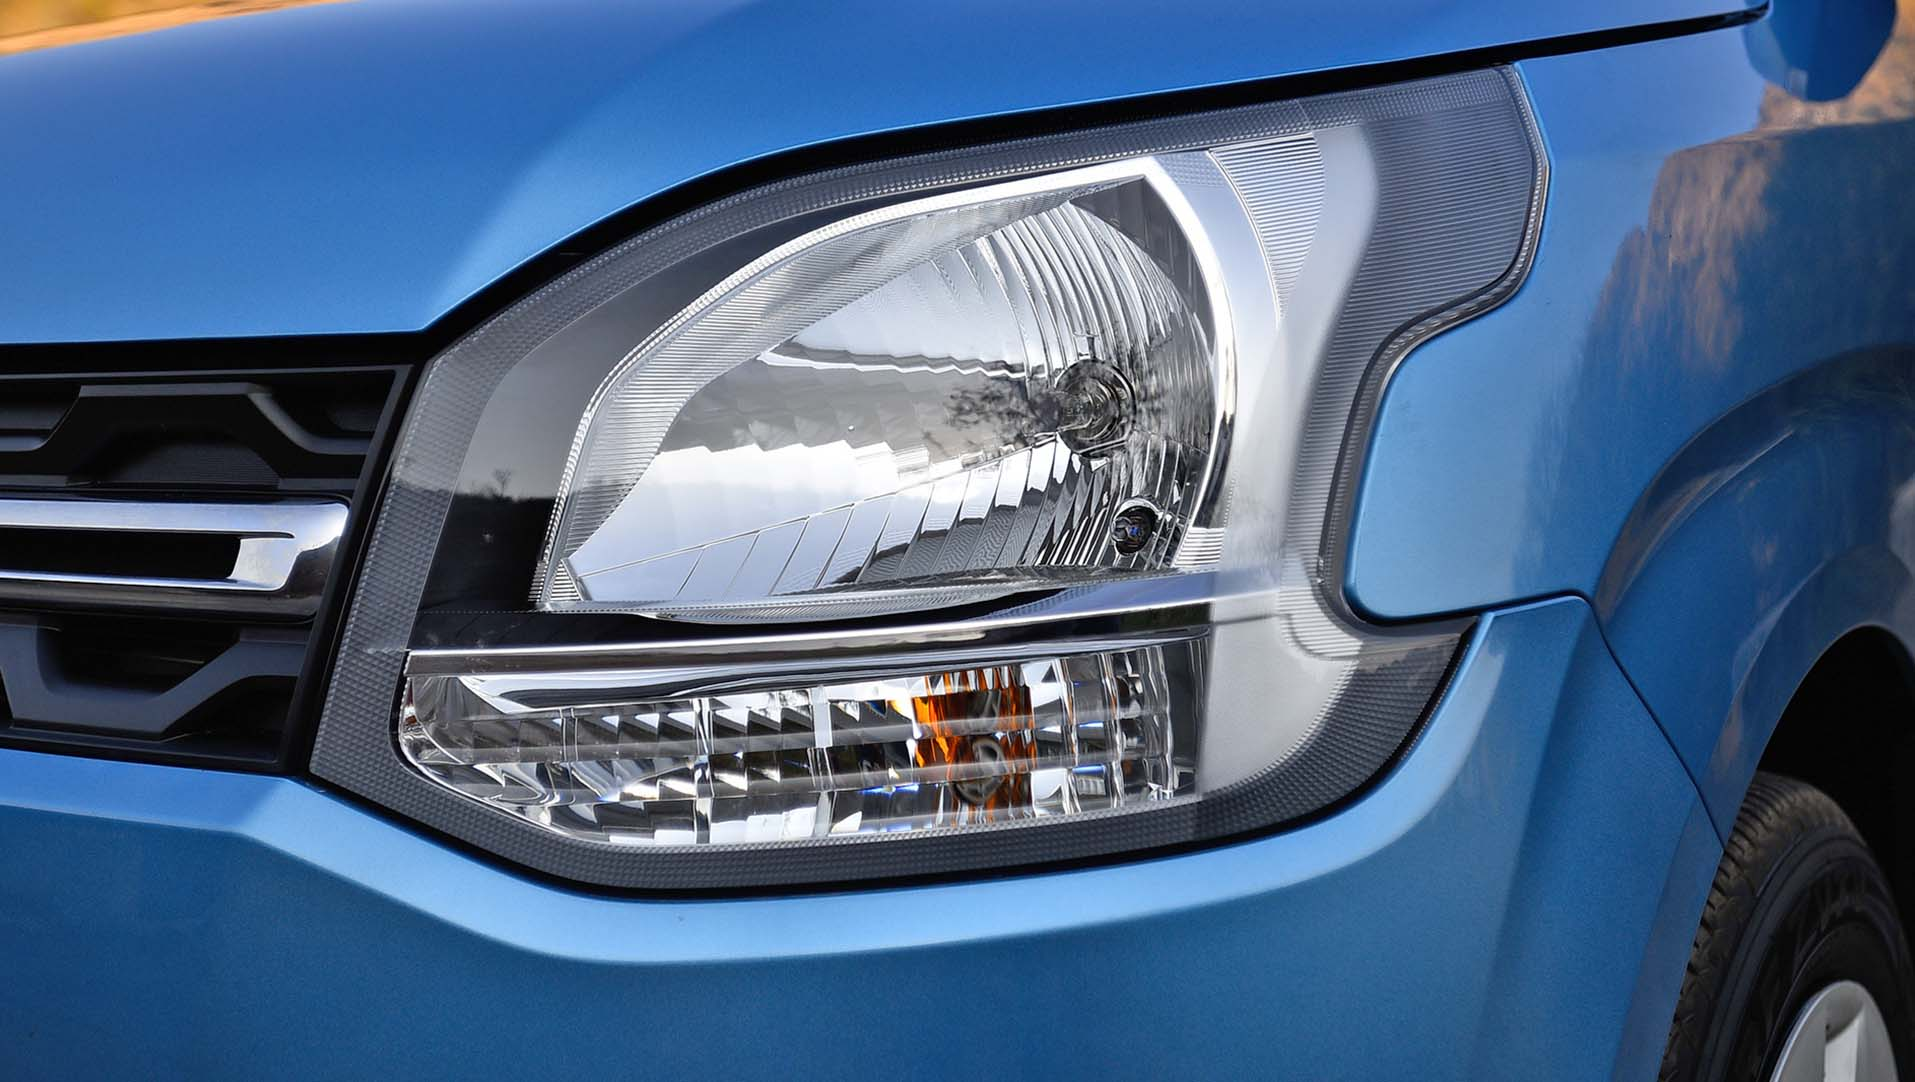 https://iciciauto.com/storage/upload/model_images/Maruti Wagon R - Headlights.jpg